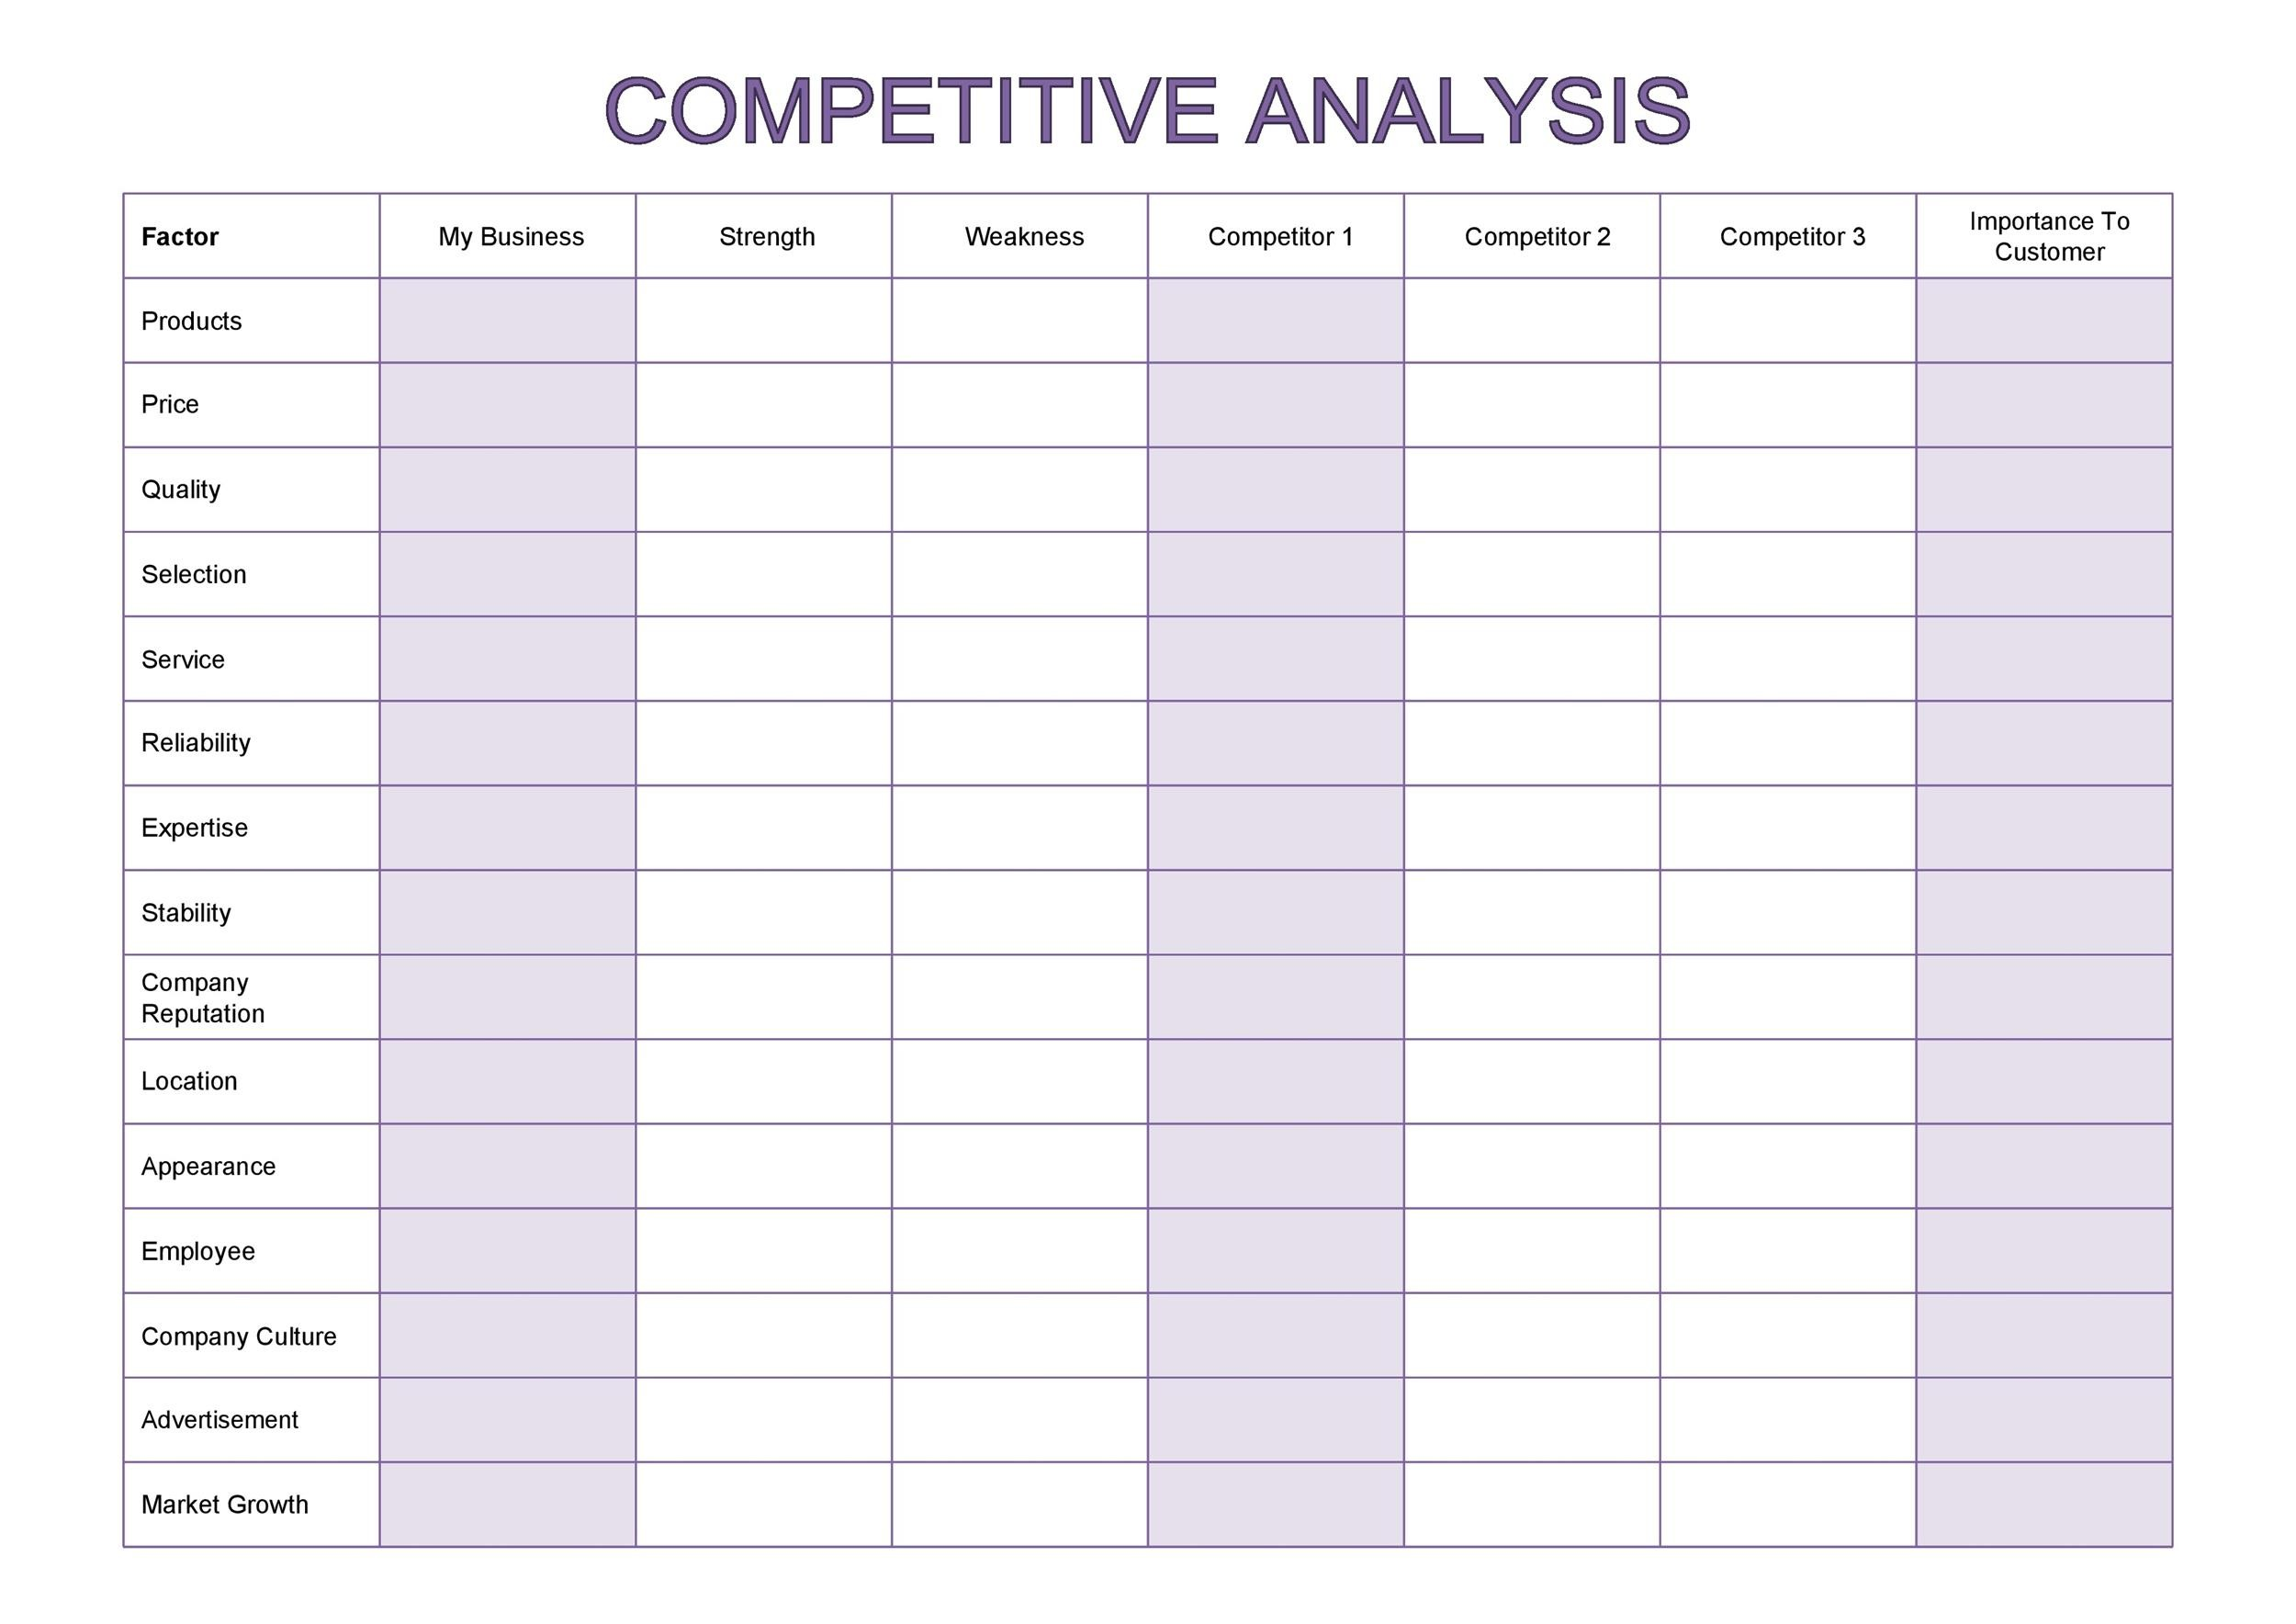 Competitive Analysis Templates - 40 Great Examples Excel, Word, PDF - competitive analysis templates